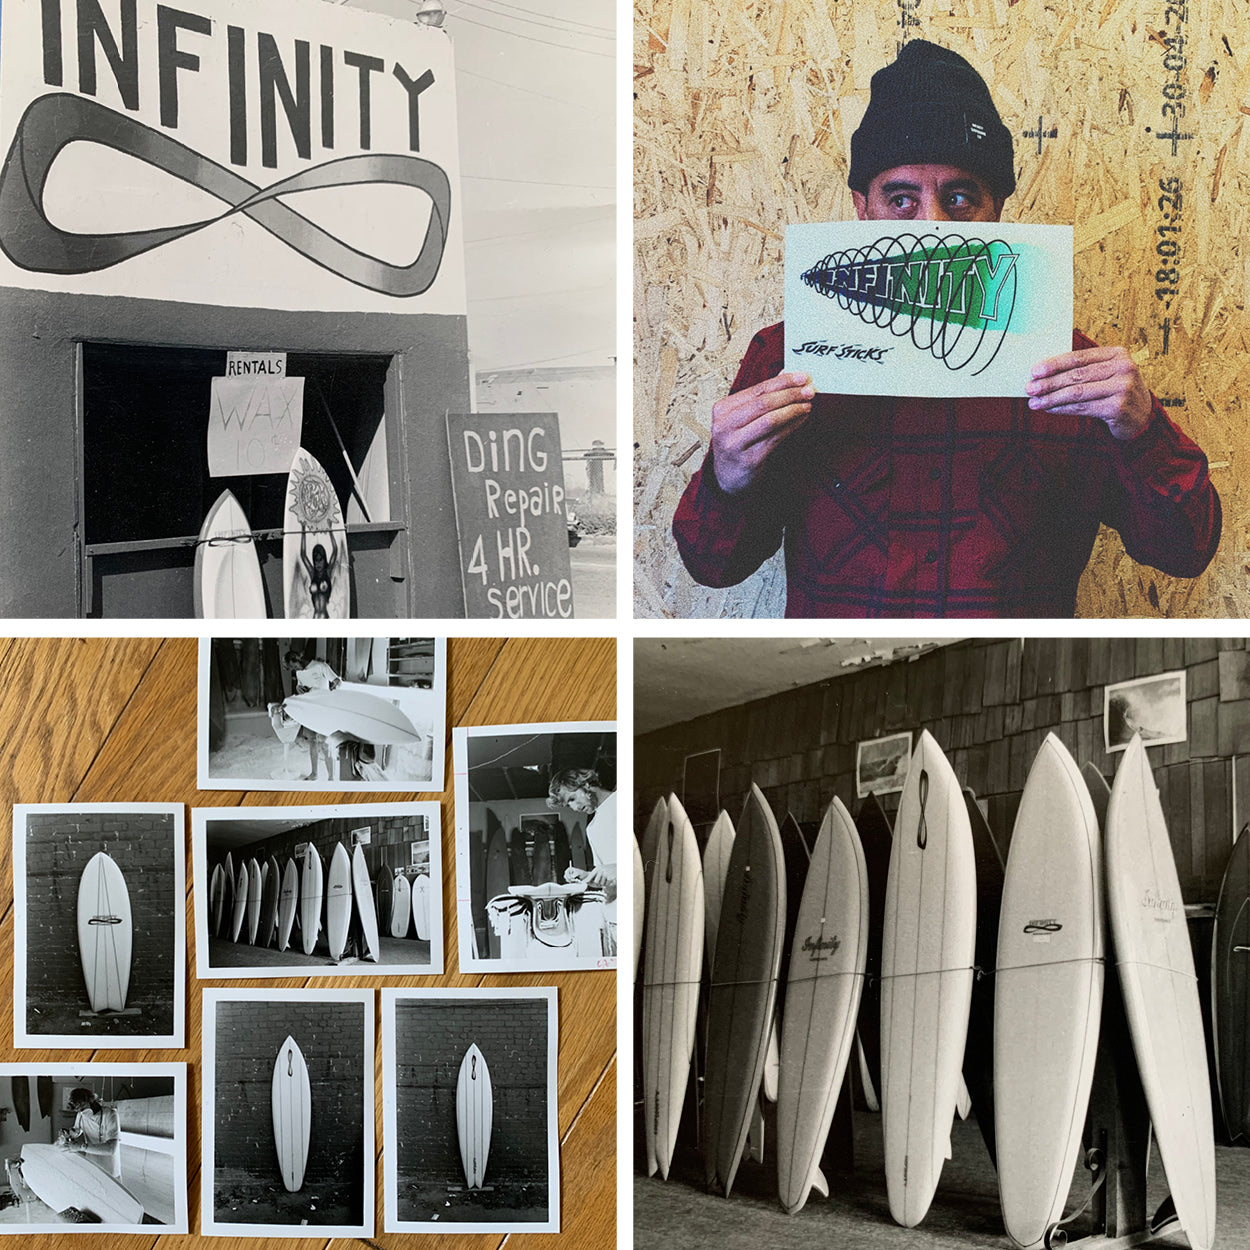 Infinity Surf 50 years of Shred